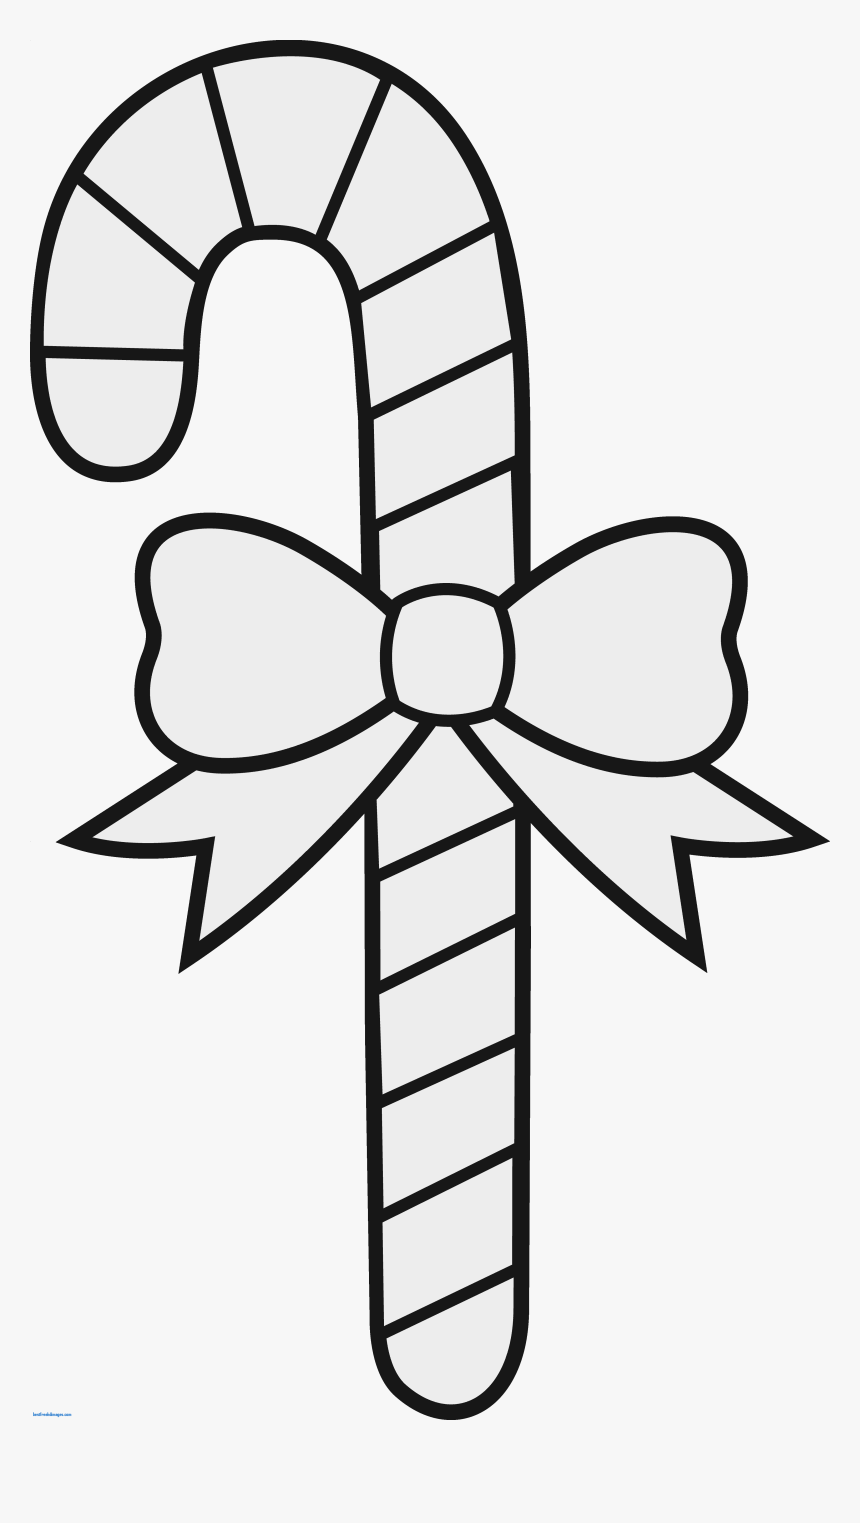 Pinwheel Drawing Black And White Clipart Christmas Drawings Candy Cane Hd Png Download Transparent Png Image Pngitem